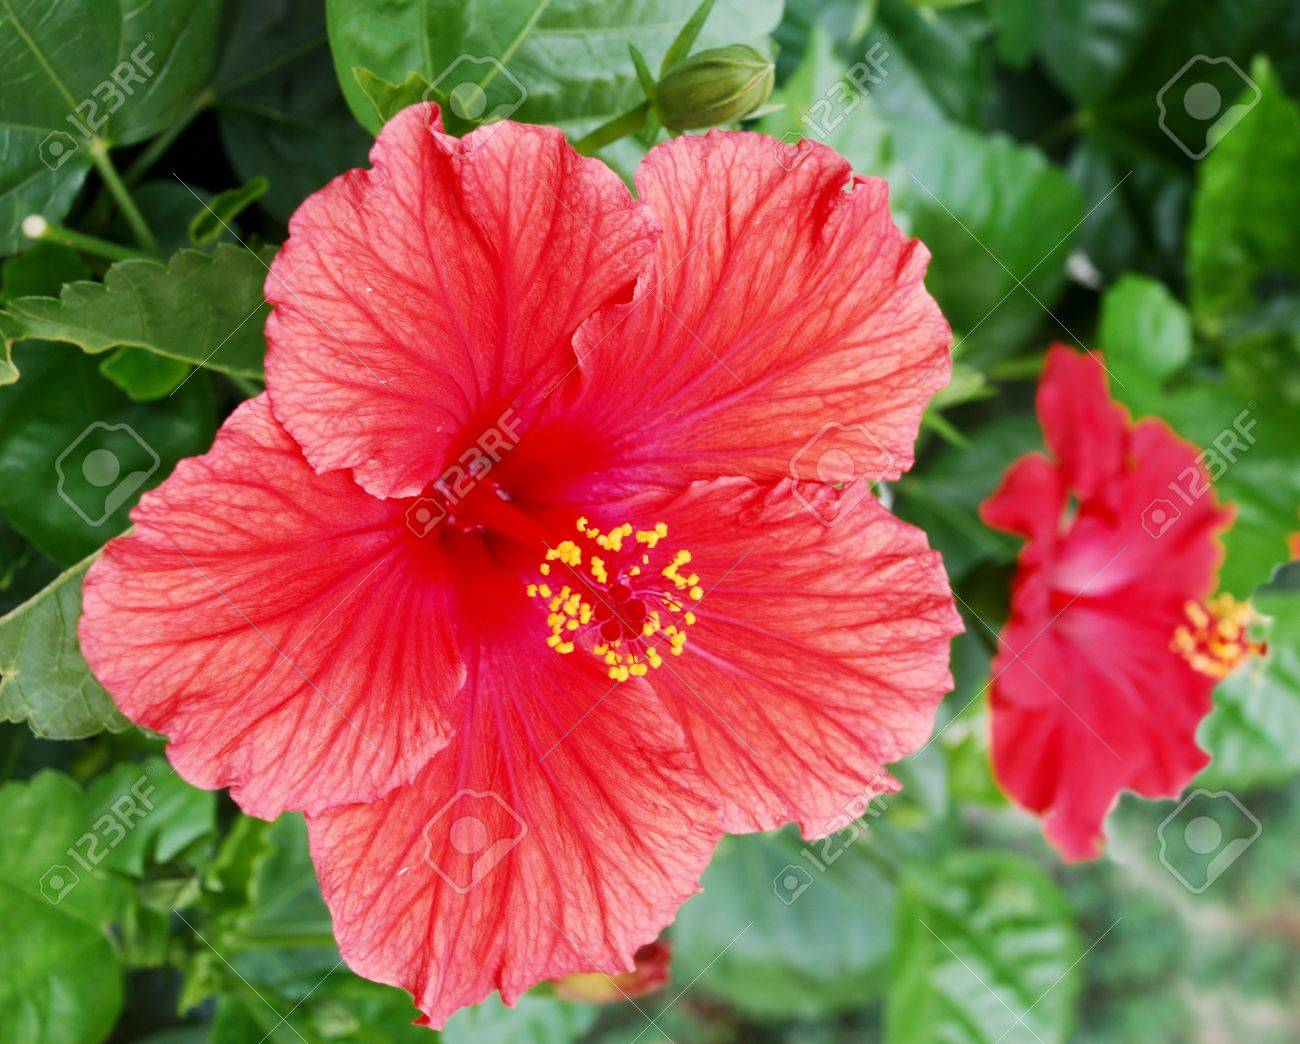 Tropical red hibiscus flower with green leaves background stock stock photo tropical red hibiscus flower with green leaves background izmirmasajfo